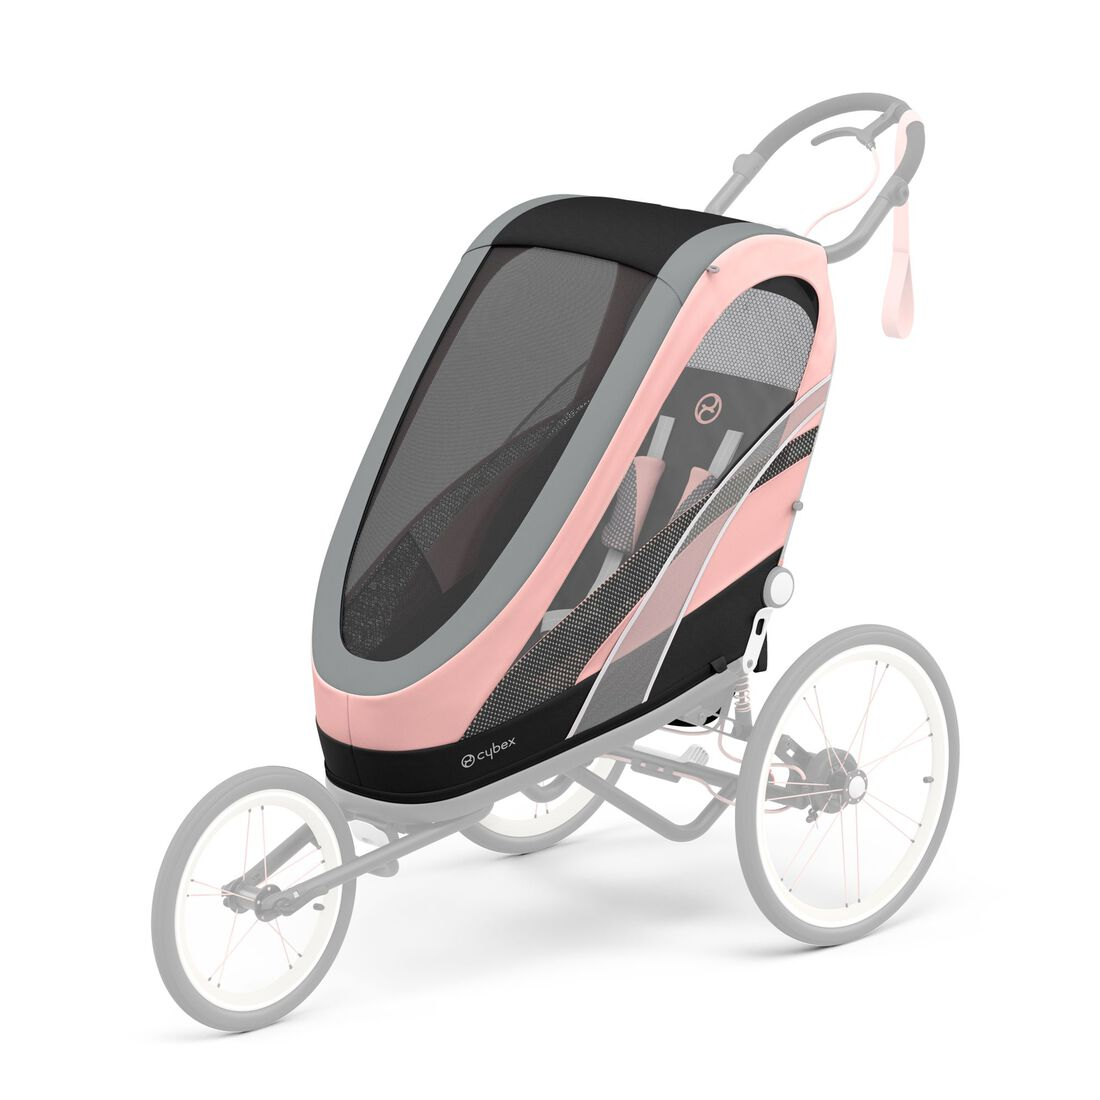 CYBEX Zeno Seat Pack - Silver Pink in Silver Pink large image number 1